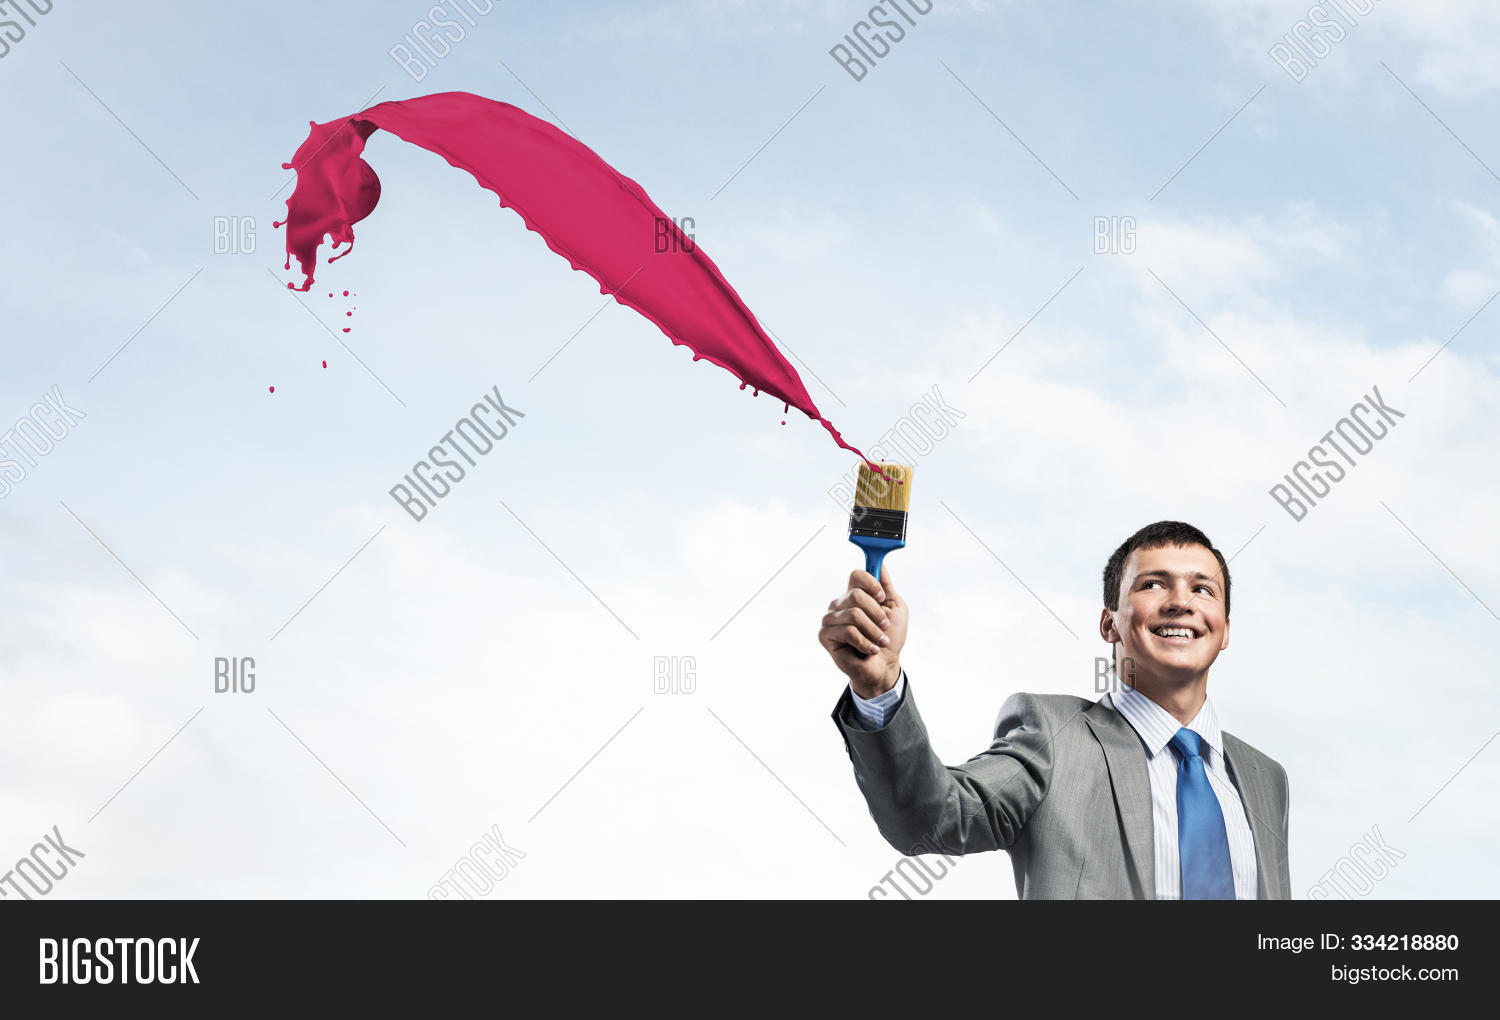 Smiling creative businessman painter holding paintbrush. Portrait of joyful handsome man in business suit and tie. Pink paint splash on blue sky background. Ambitions and creativity in business